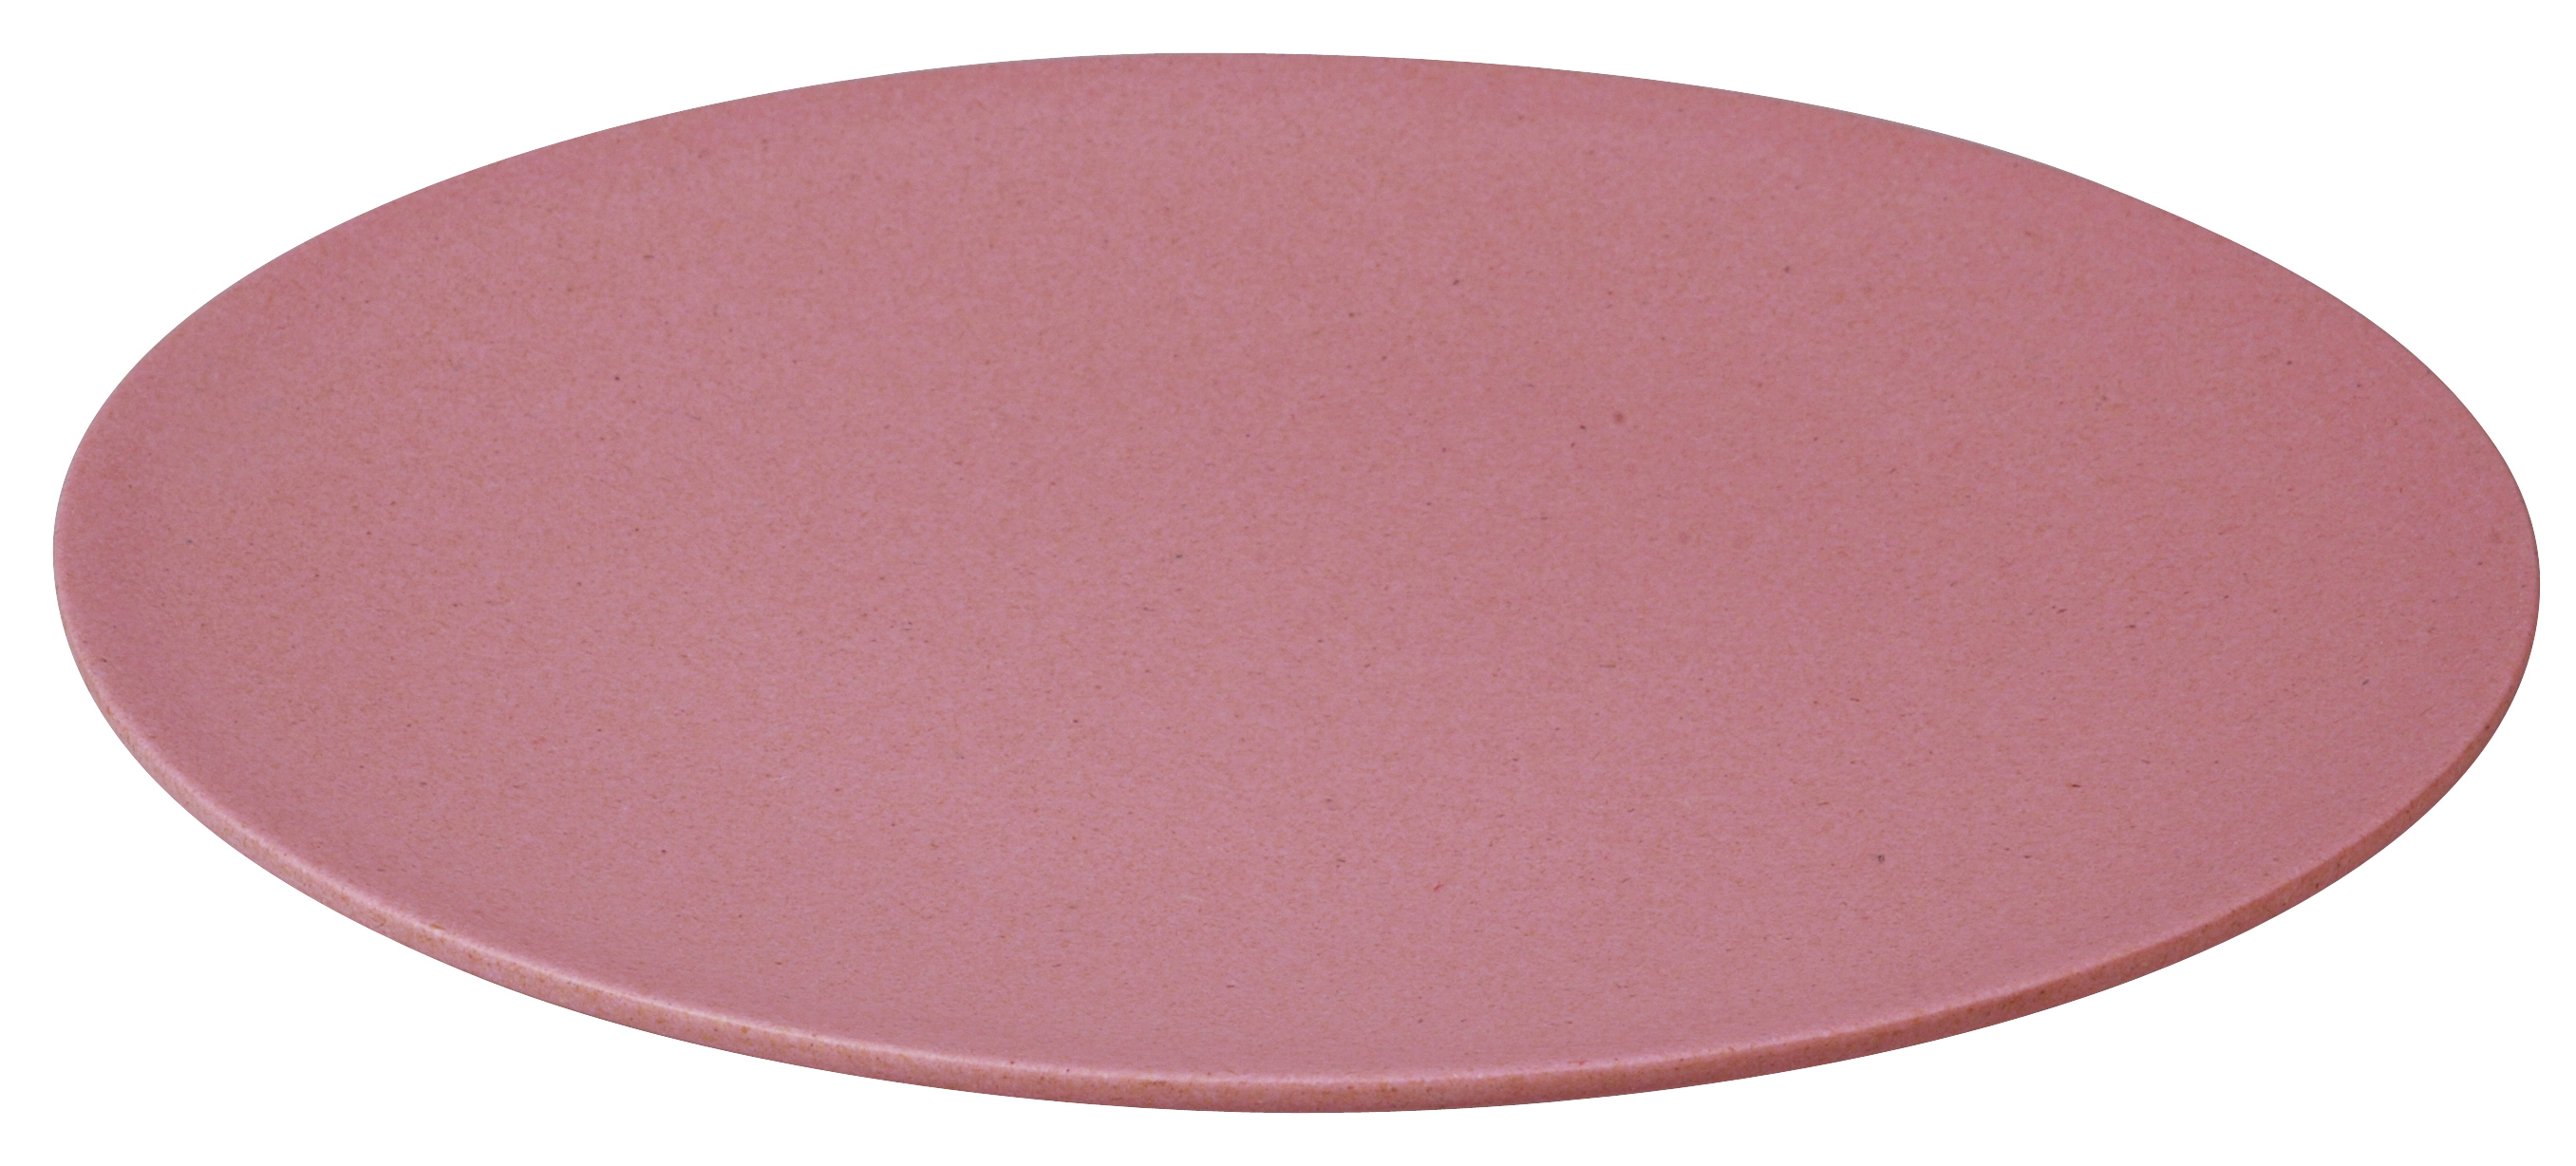 LARGE BITE plate Pink